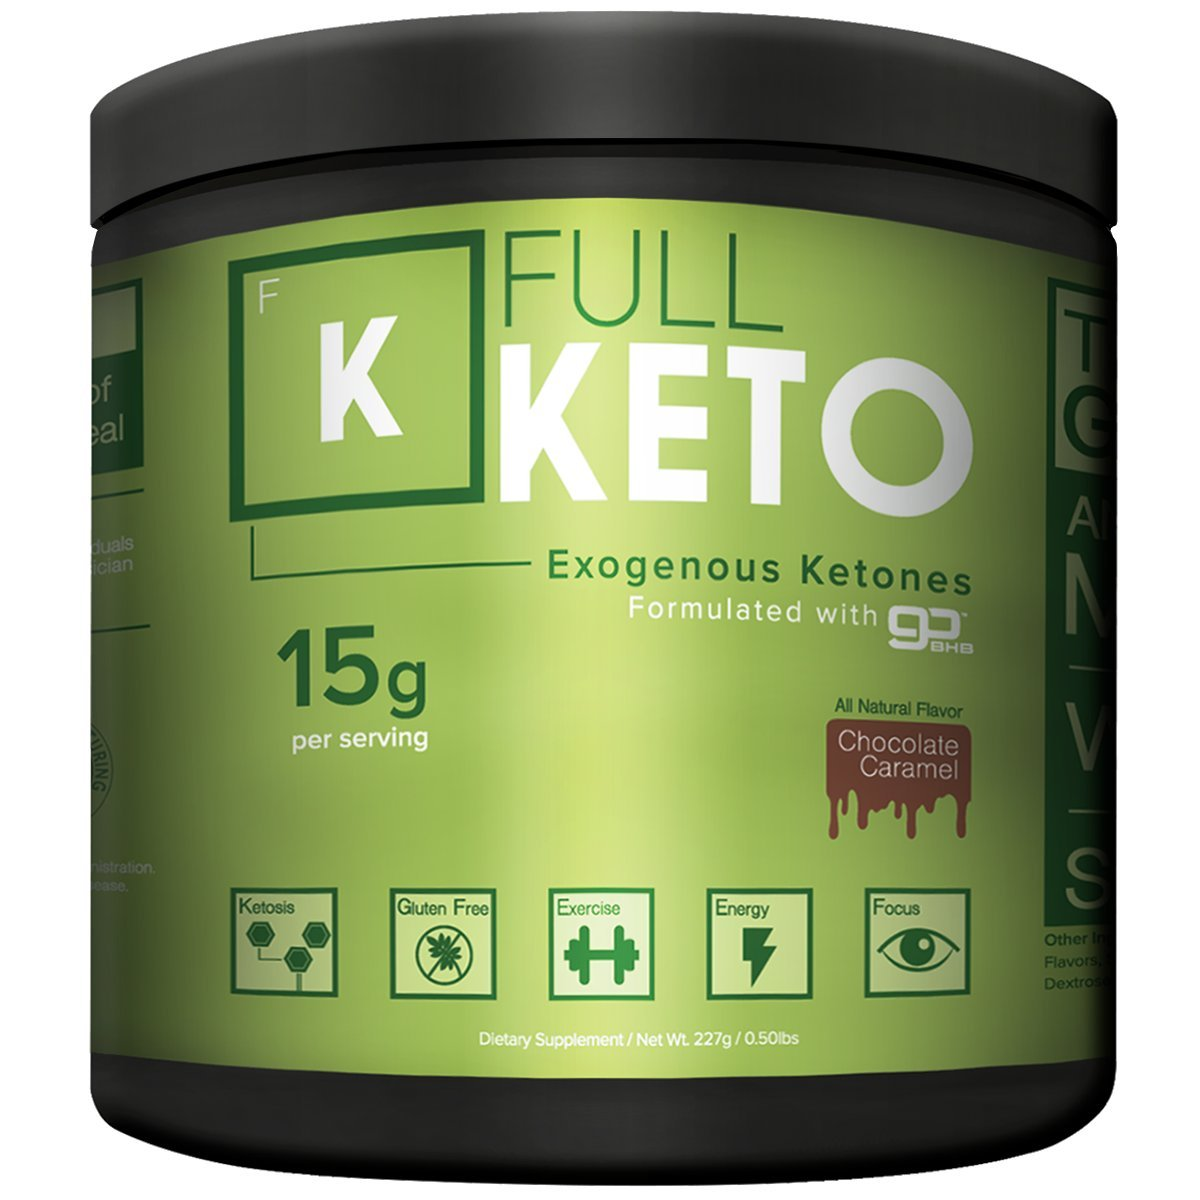 Exogenous Ketones Supplement Full Keto | (15g Per Serving = 15 Minutes to Ketosis) | Chef Formulated Chocolate Flavor Beats Every Taste Test by Instant Brands